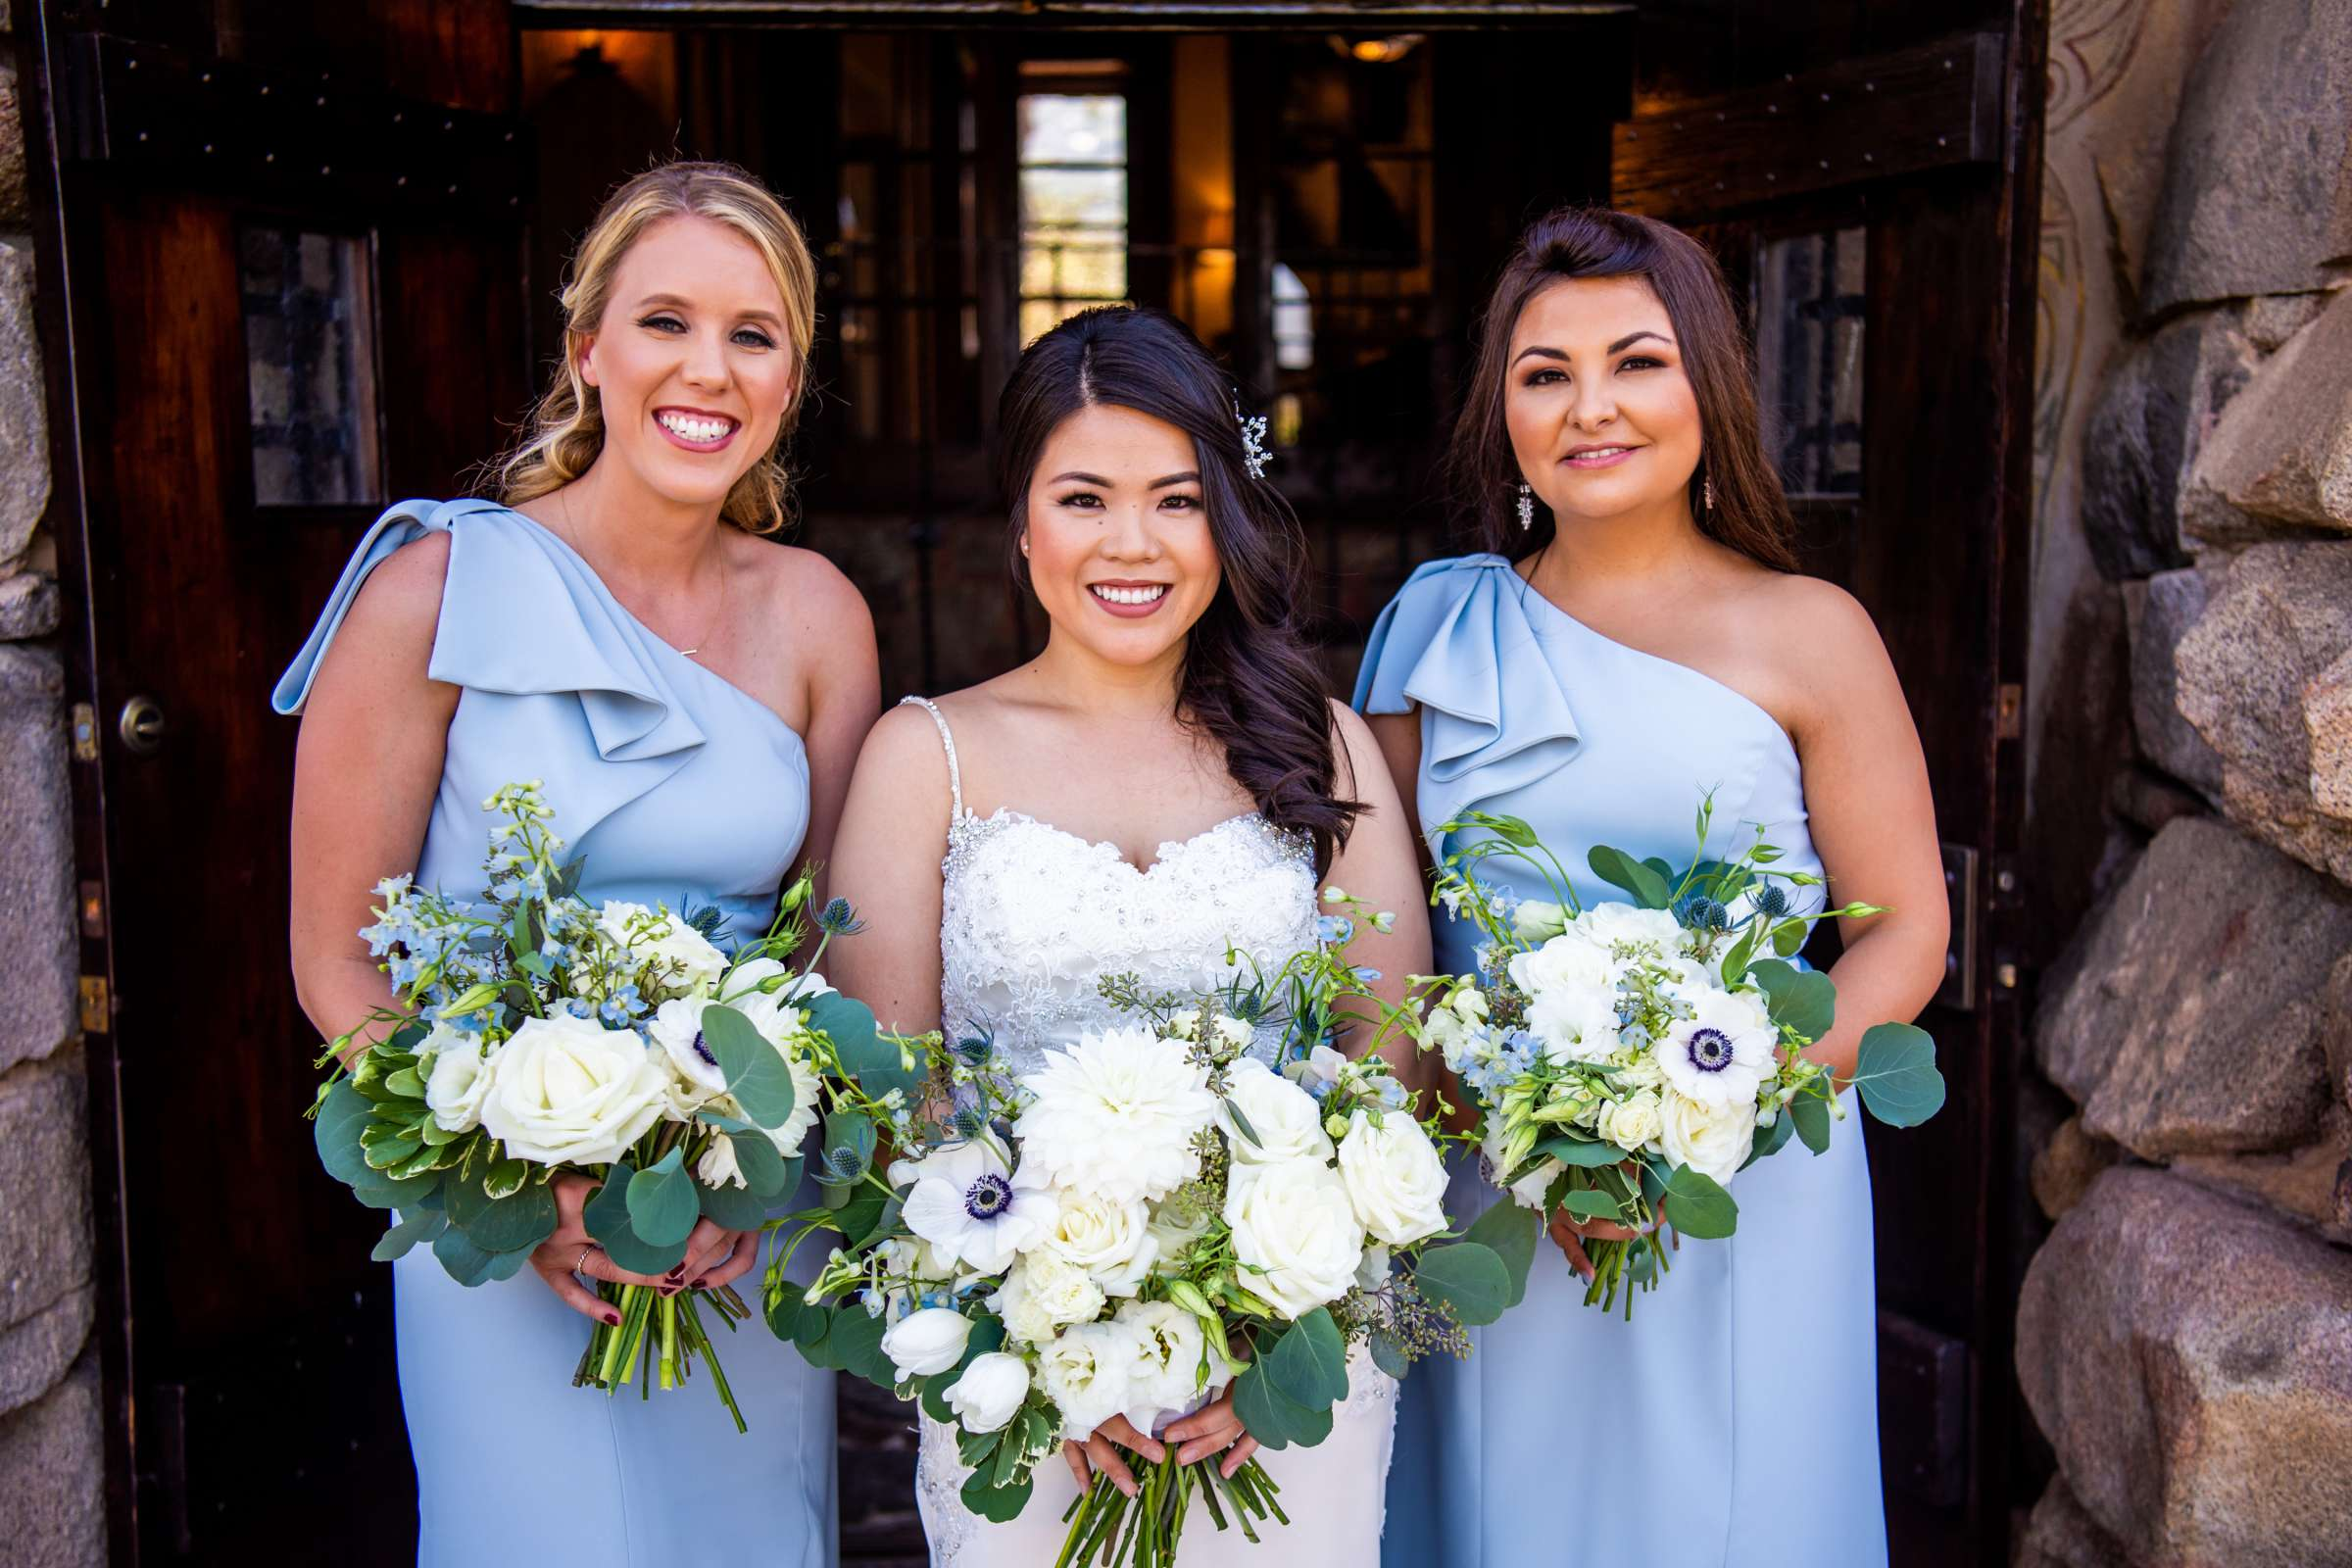 Mt Woodson Castle Wedding coordinated by I Do Weddings, Aya and Jared Wedding Photo #486903 by True Photography